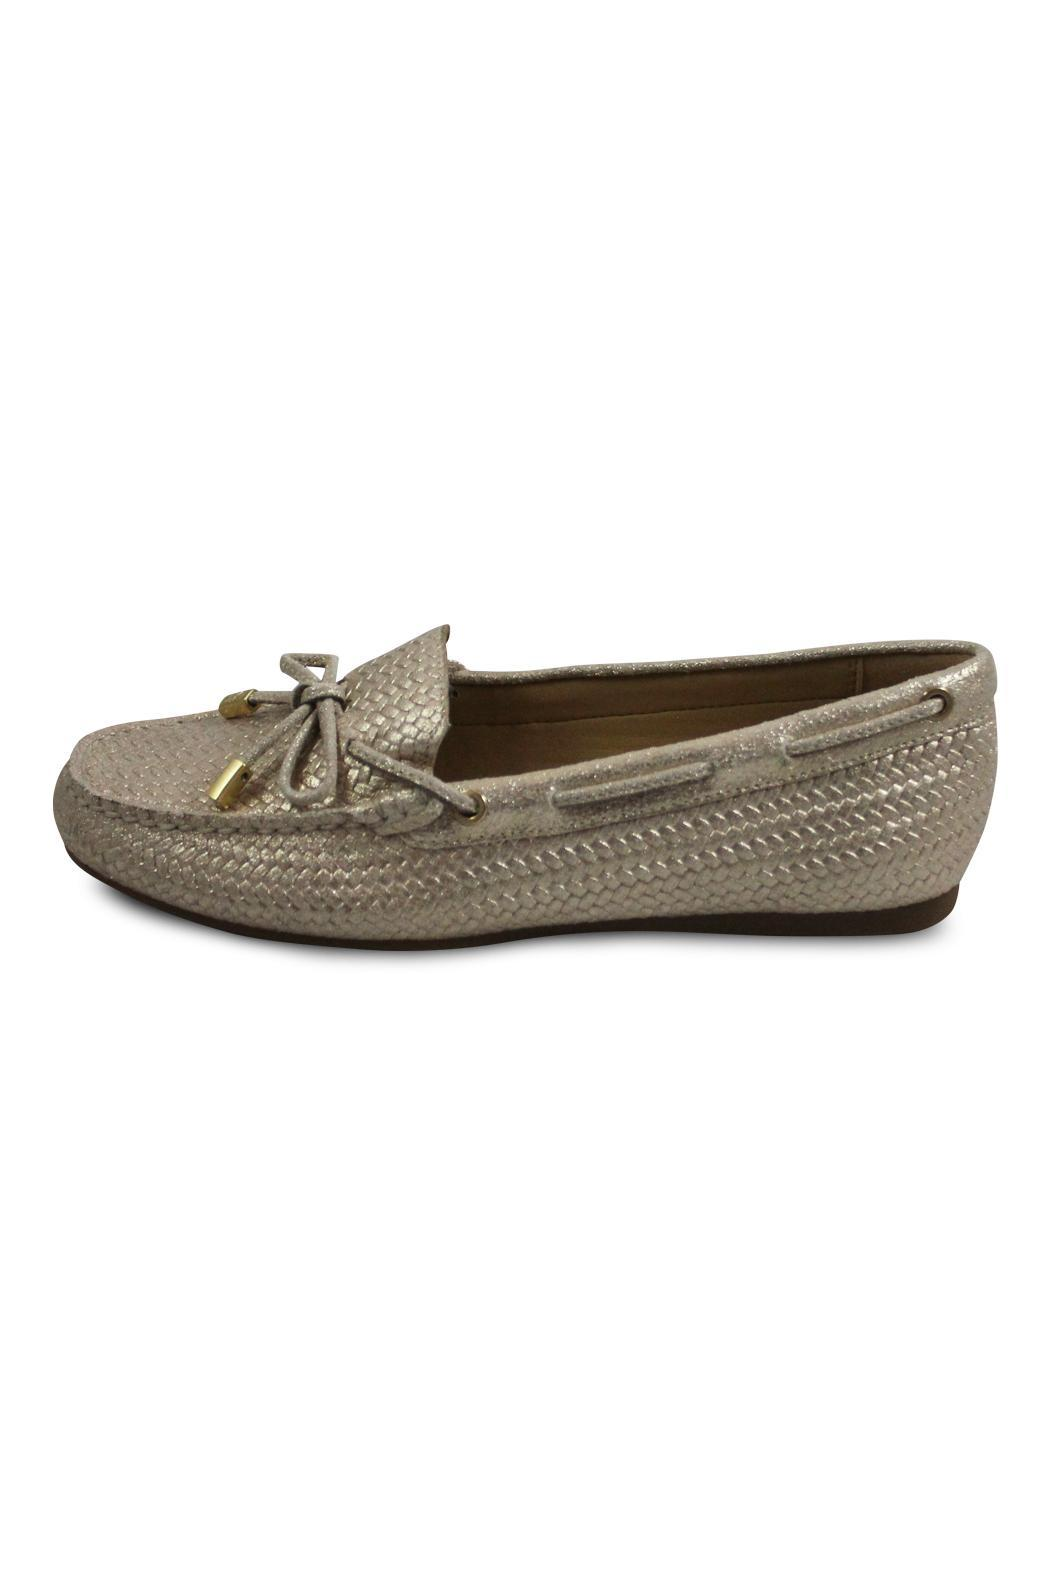 Michael Kors Gold Moc Loafer - Front Cropped Image